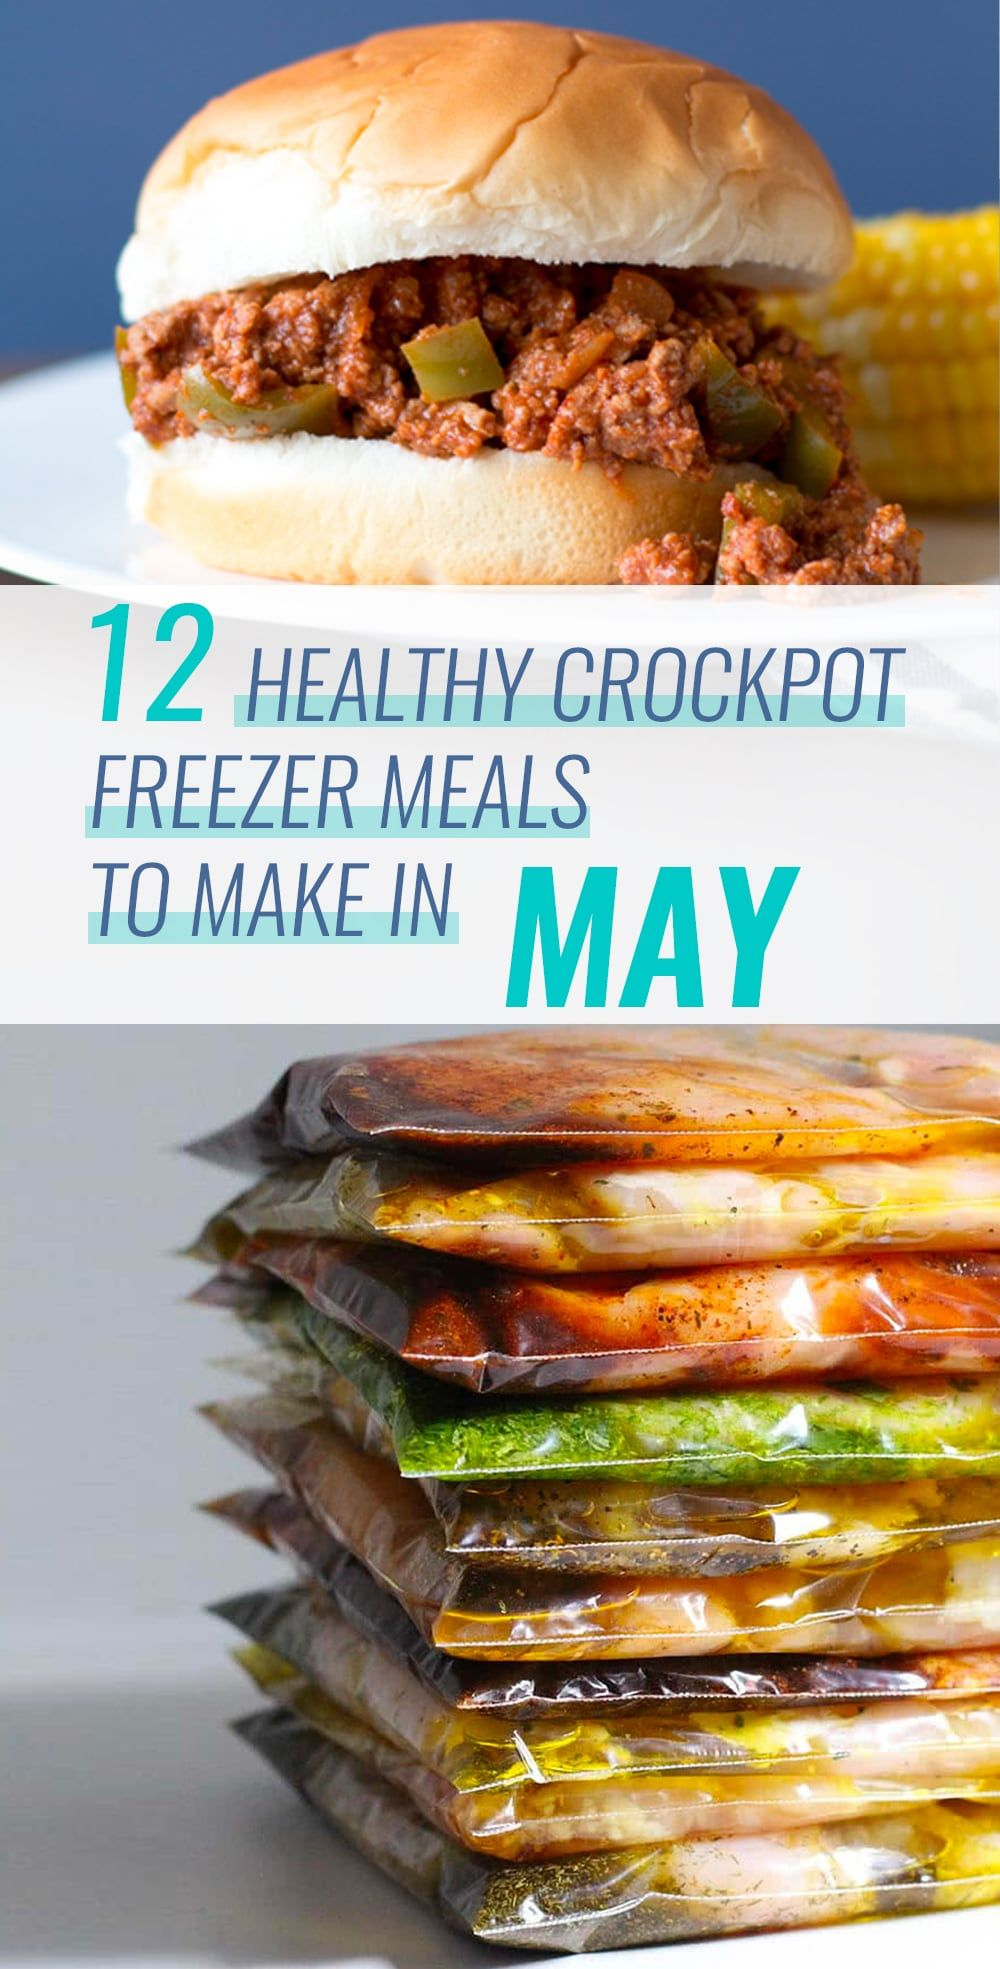 12 Healthy Crockpot Freezer Meals to Make in May images